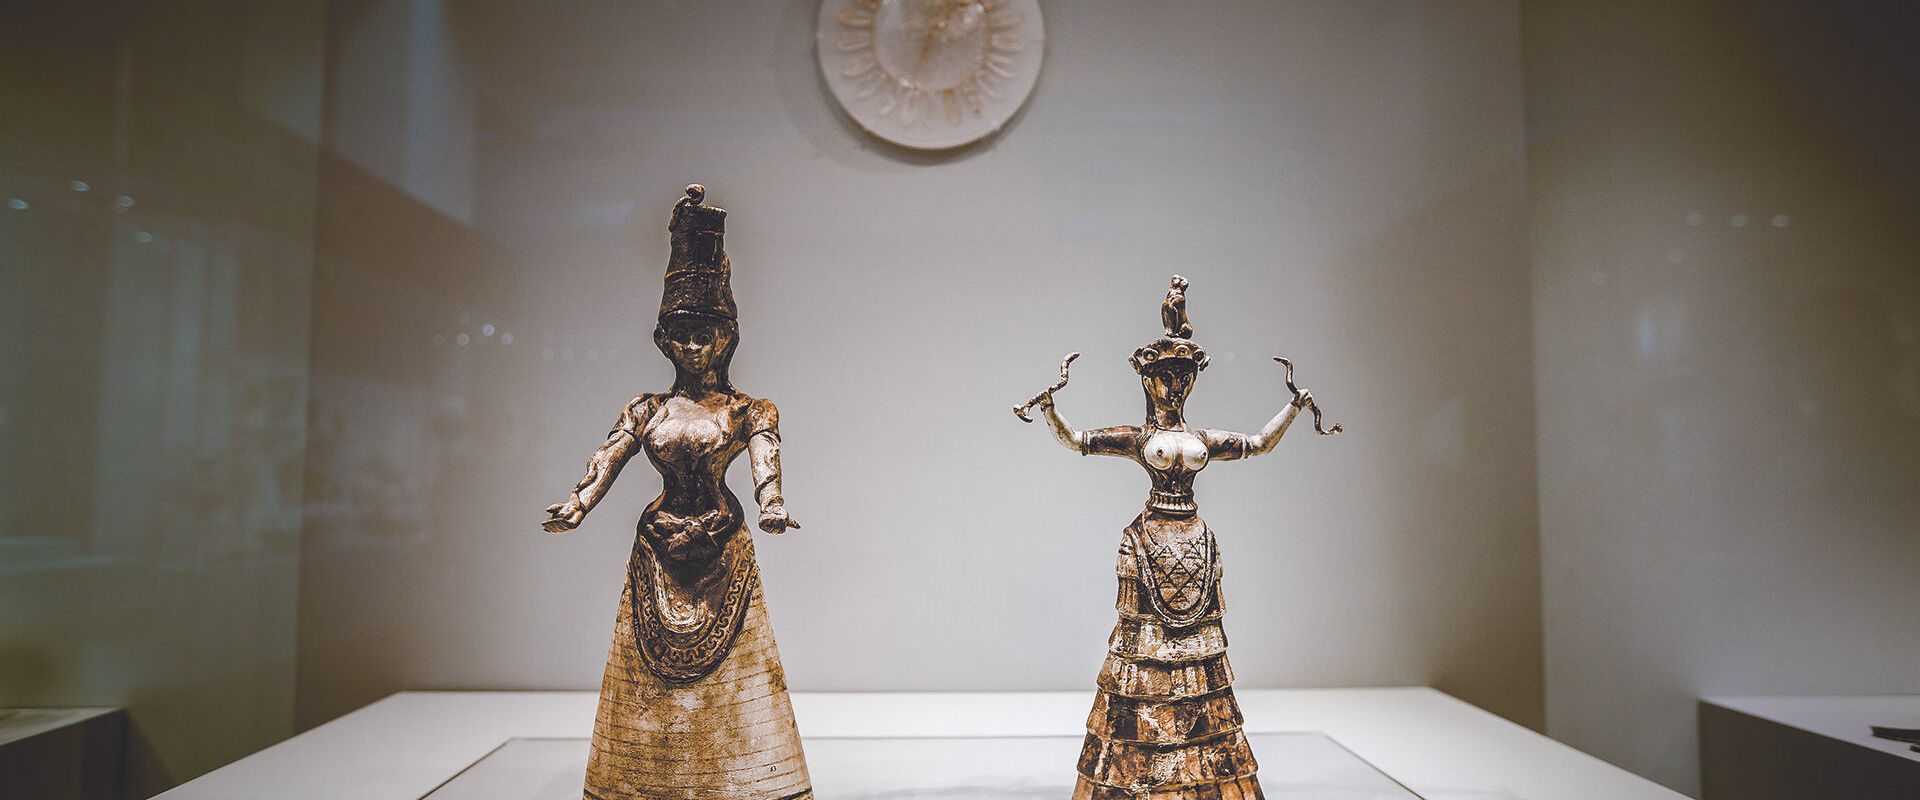 Snake Goddess figurines, Archaeological Museum of Heraklion